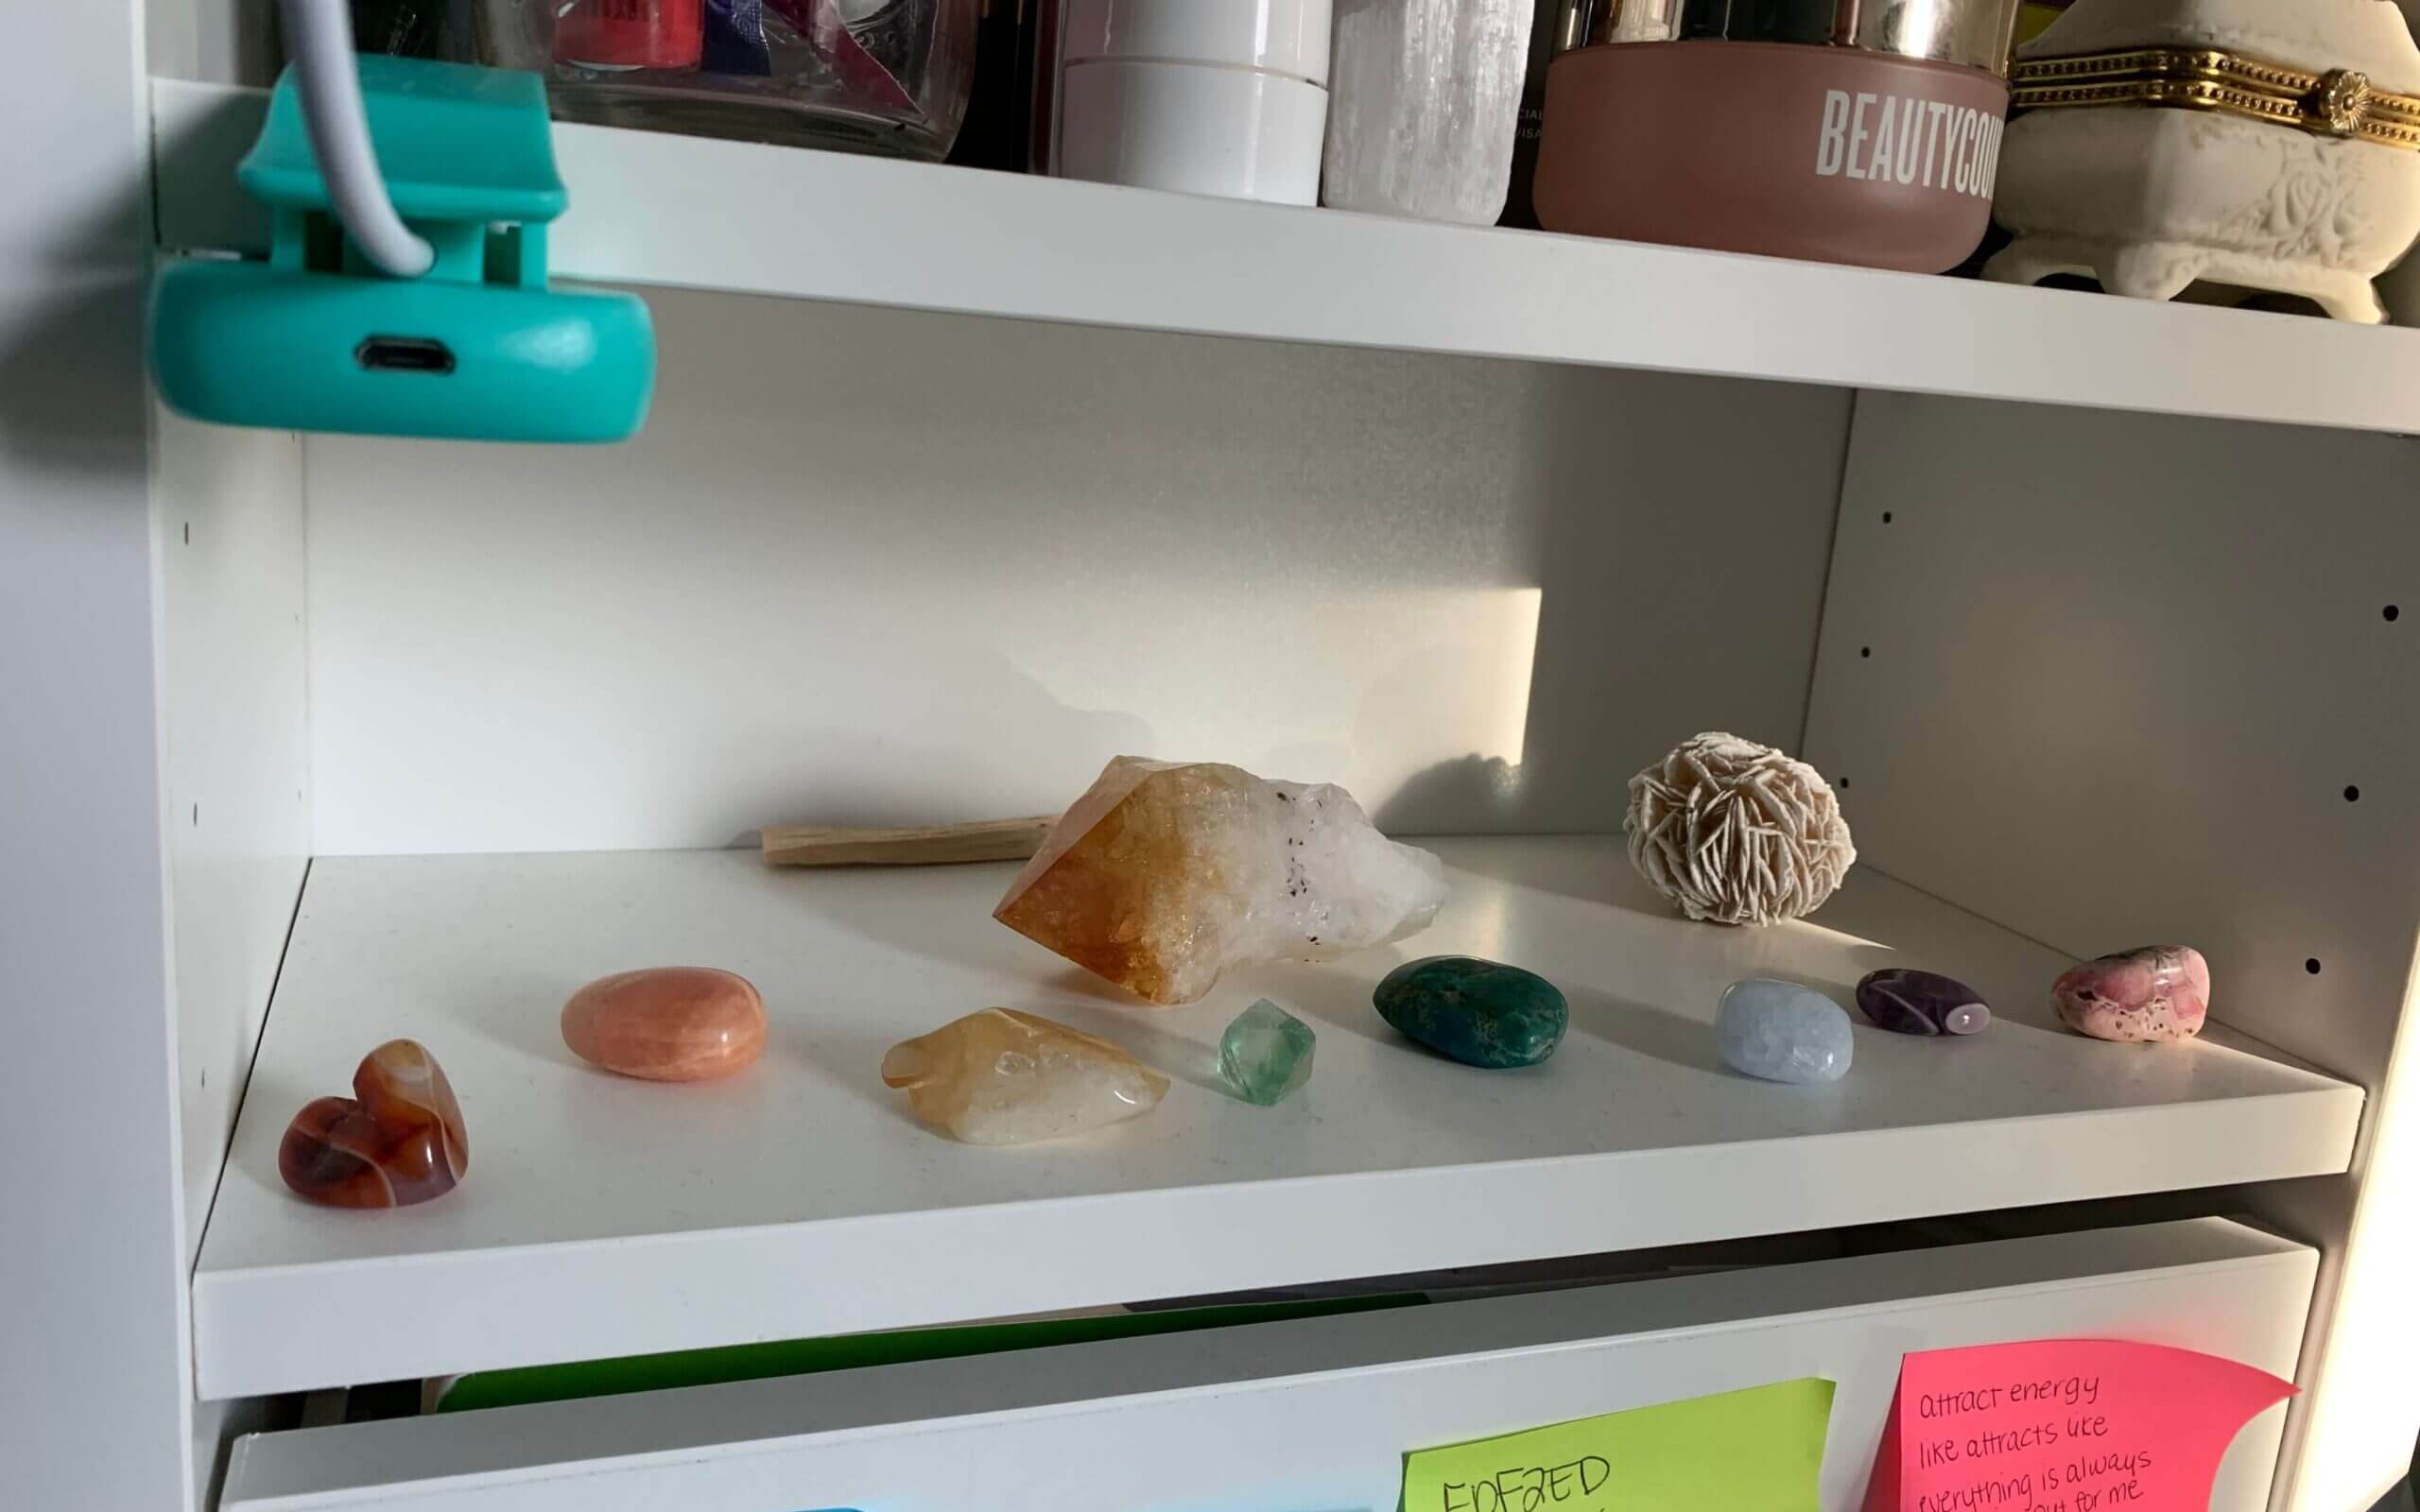 looking past the clutter to my sacred space